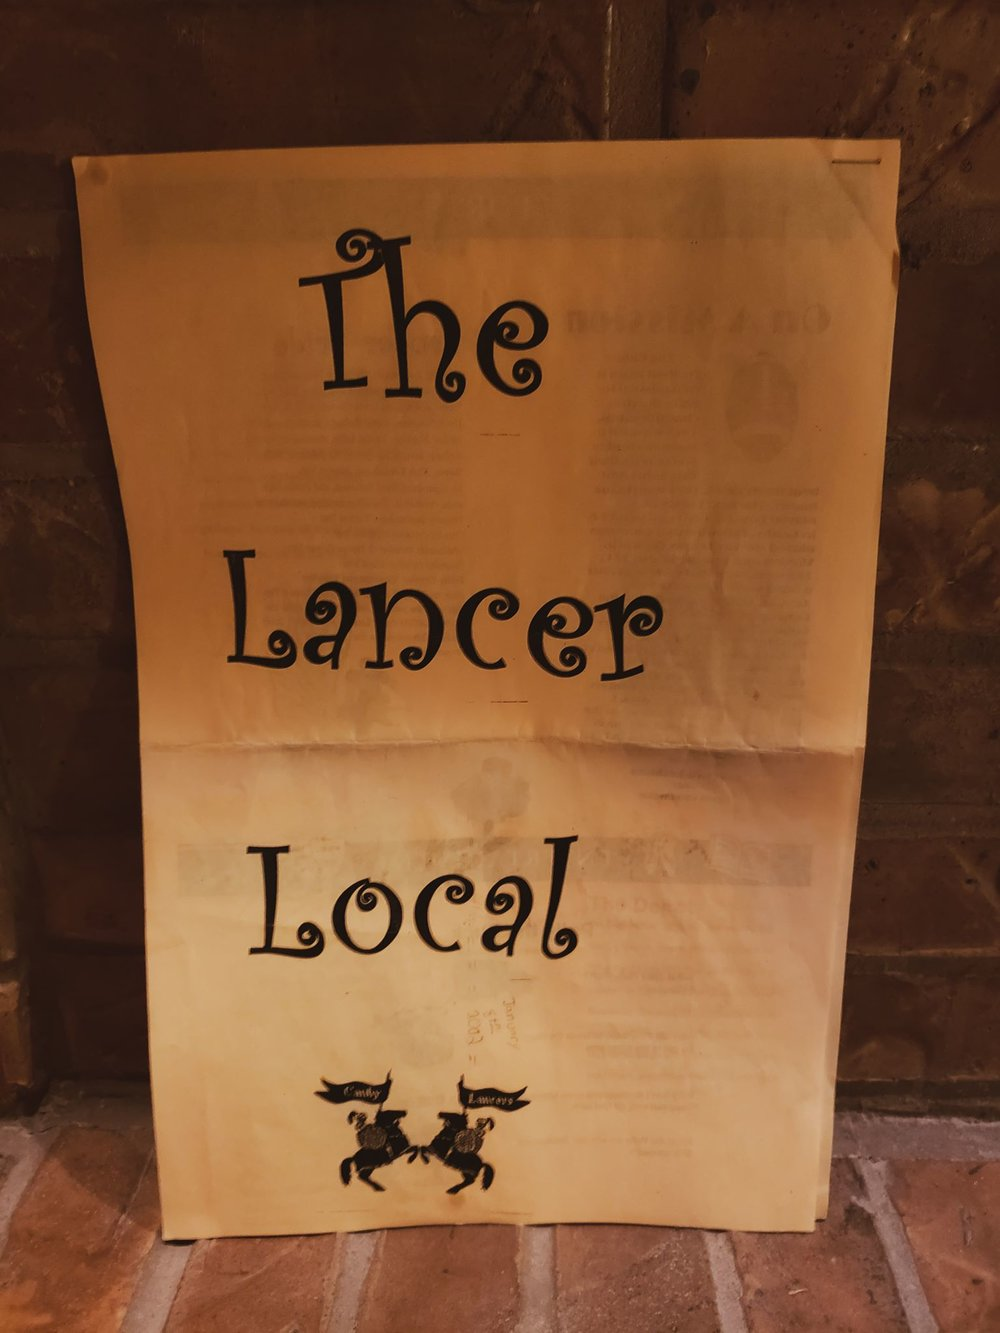 The Lancer Local, First Edition. 2002.